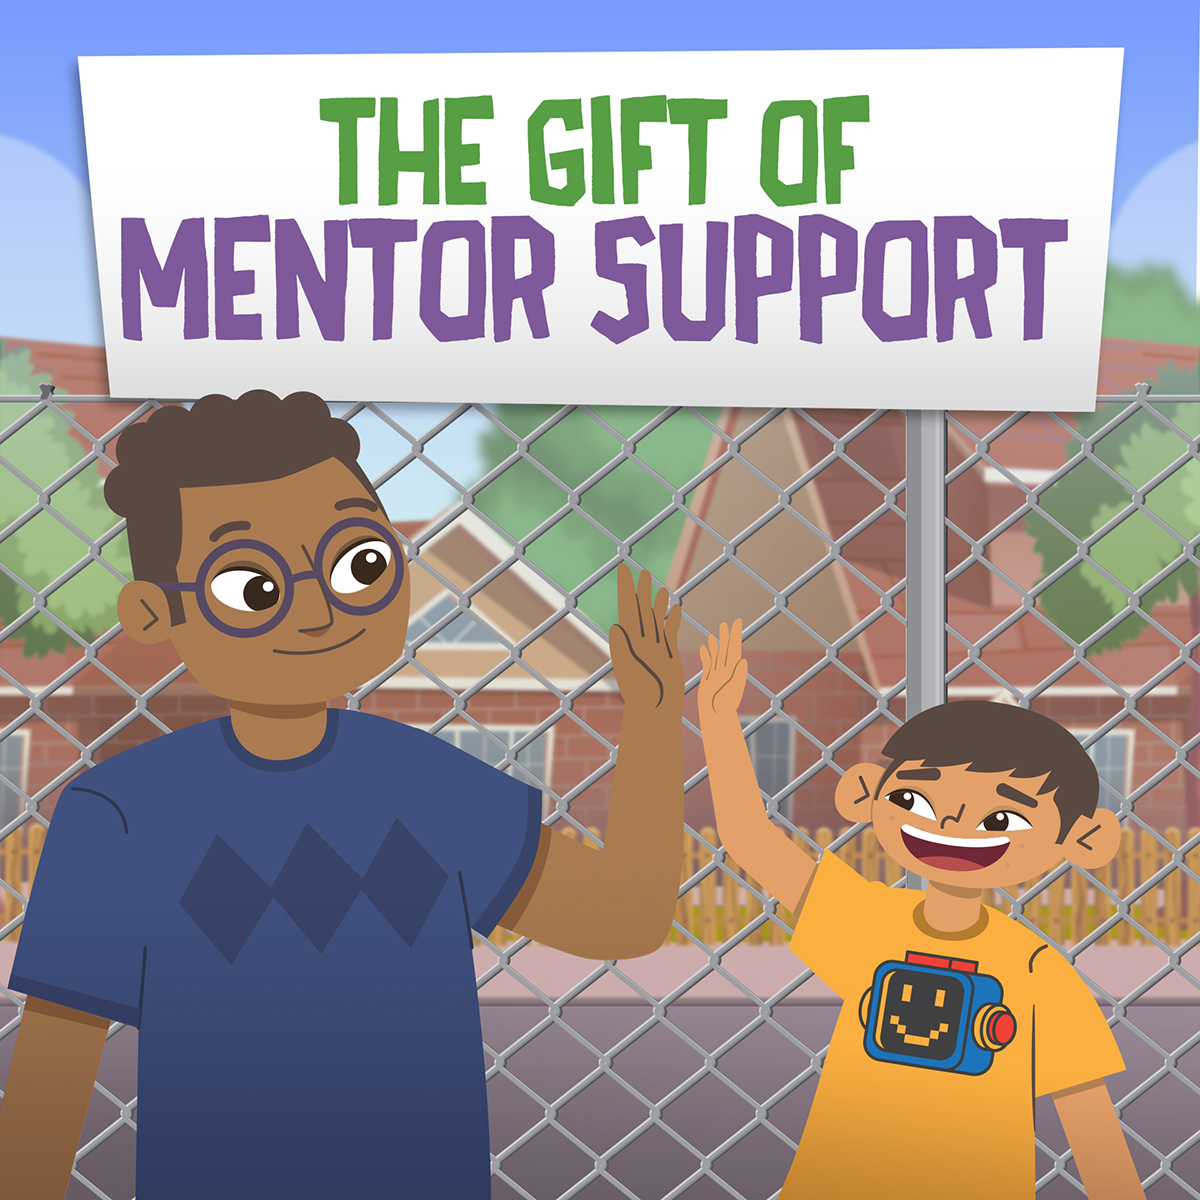 The Gift of Mentor Support